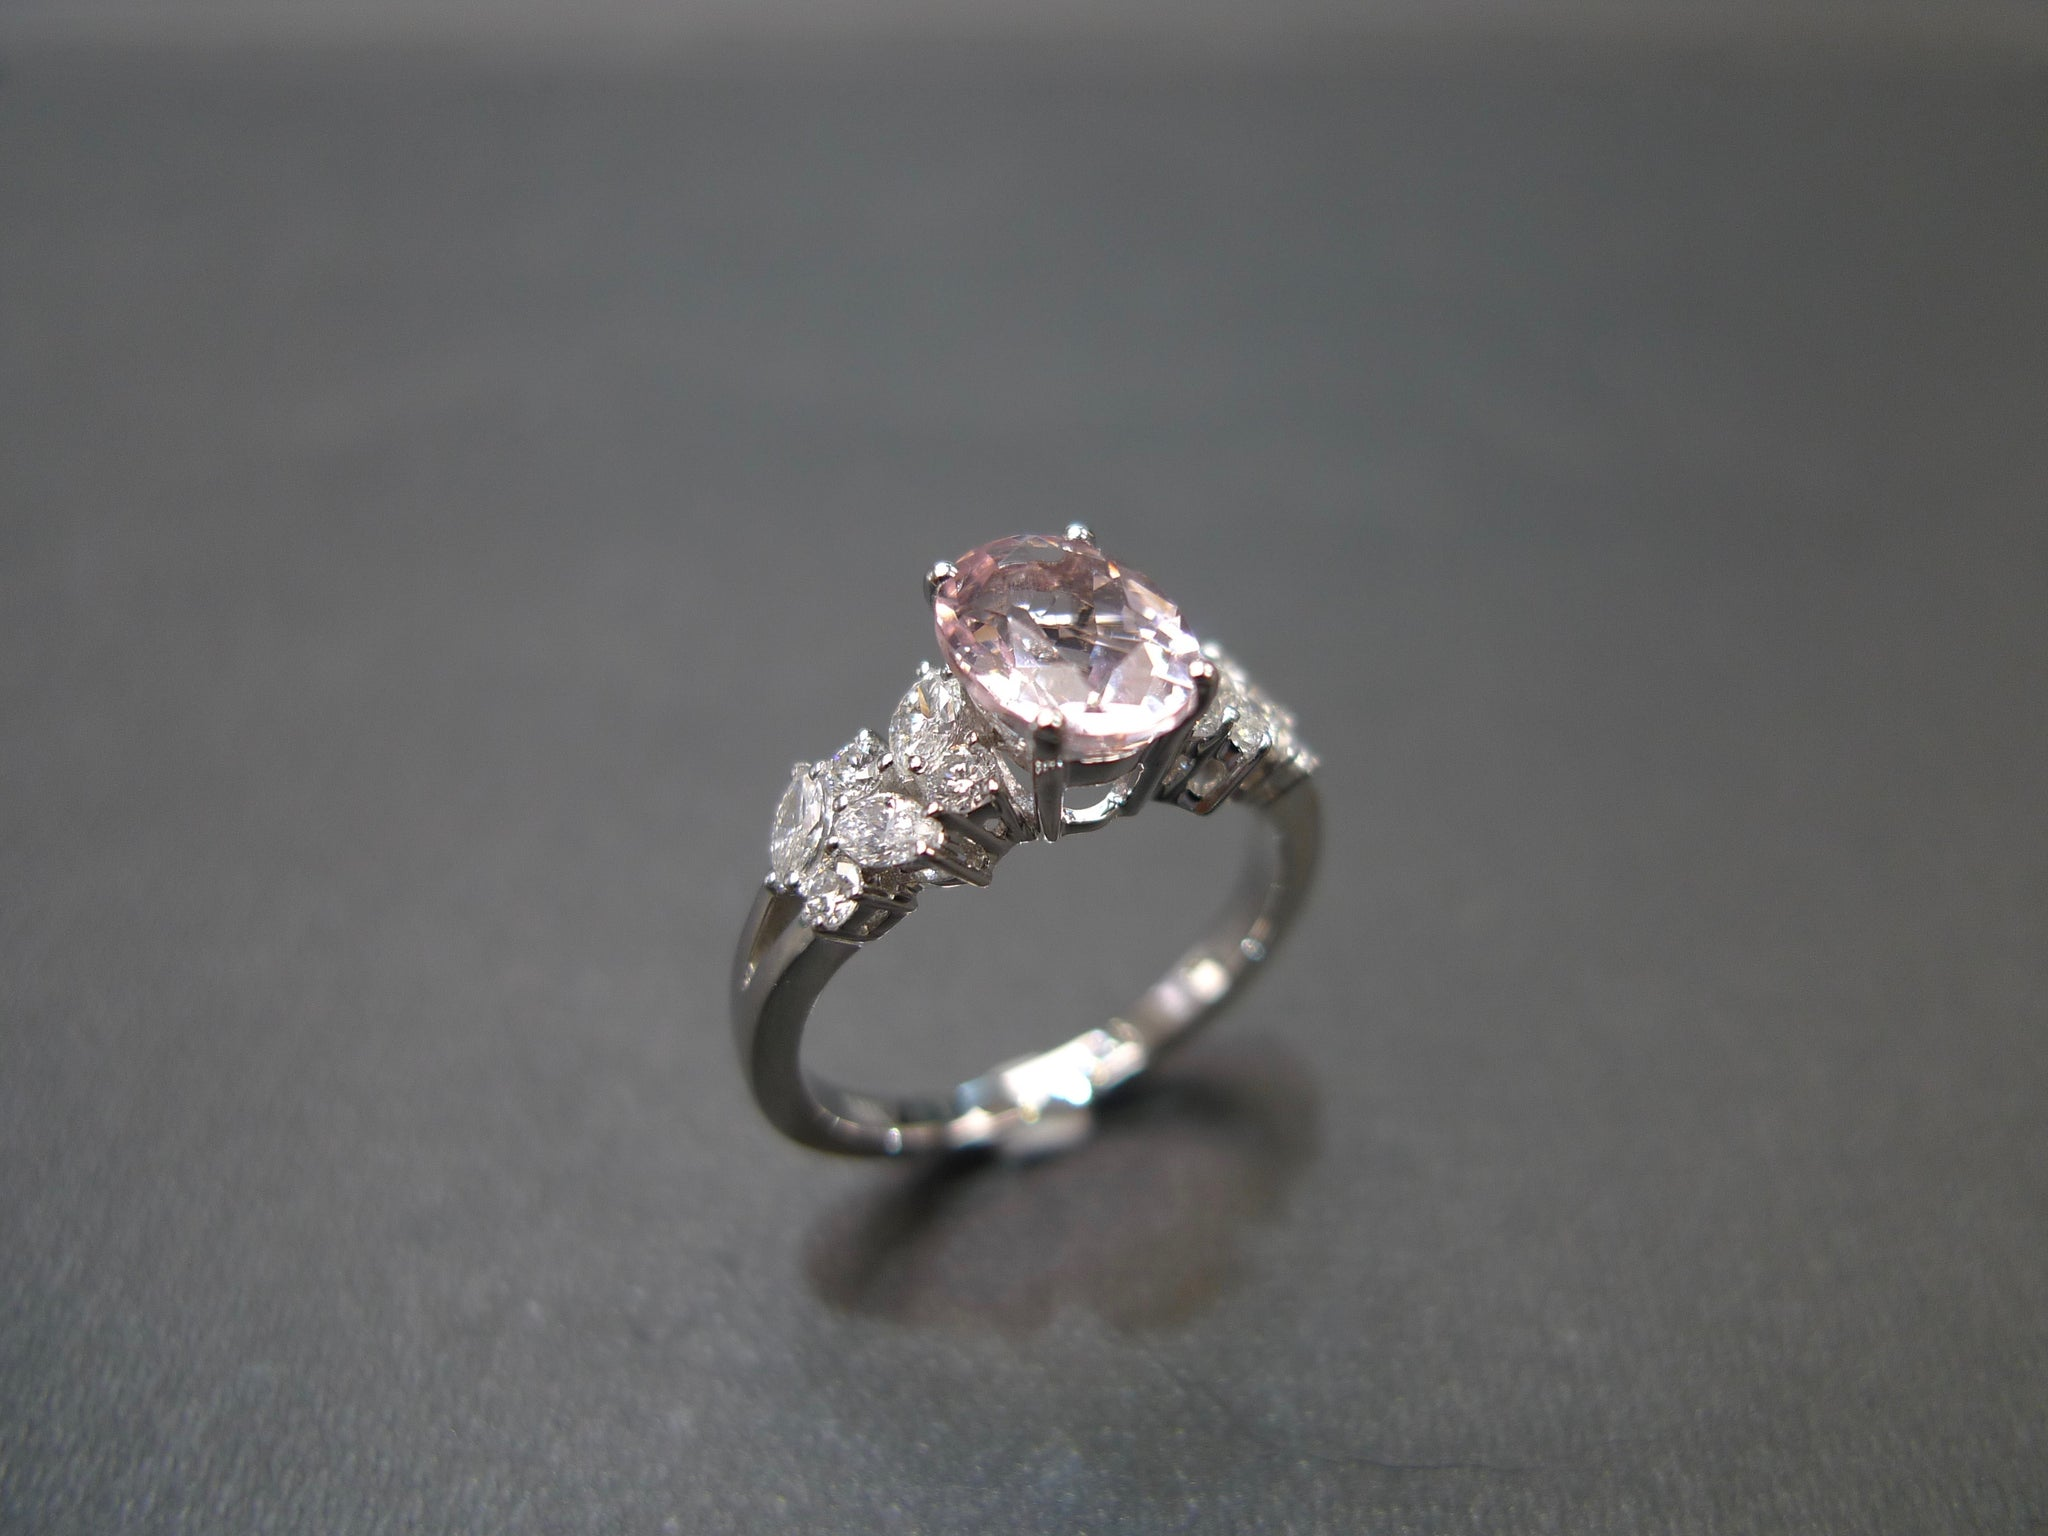 Champagne Morganite & Marquise Diamond Engagement Ring in 18K White Gold - HN JEWELRY